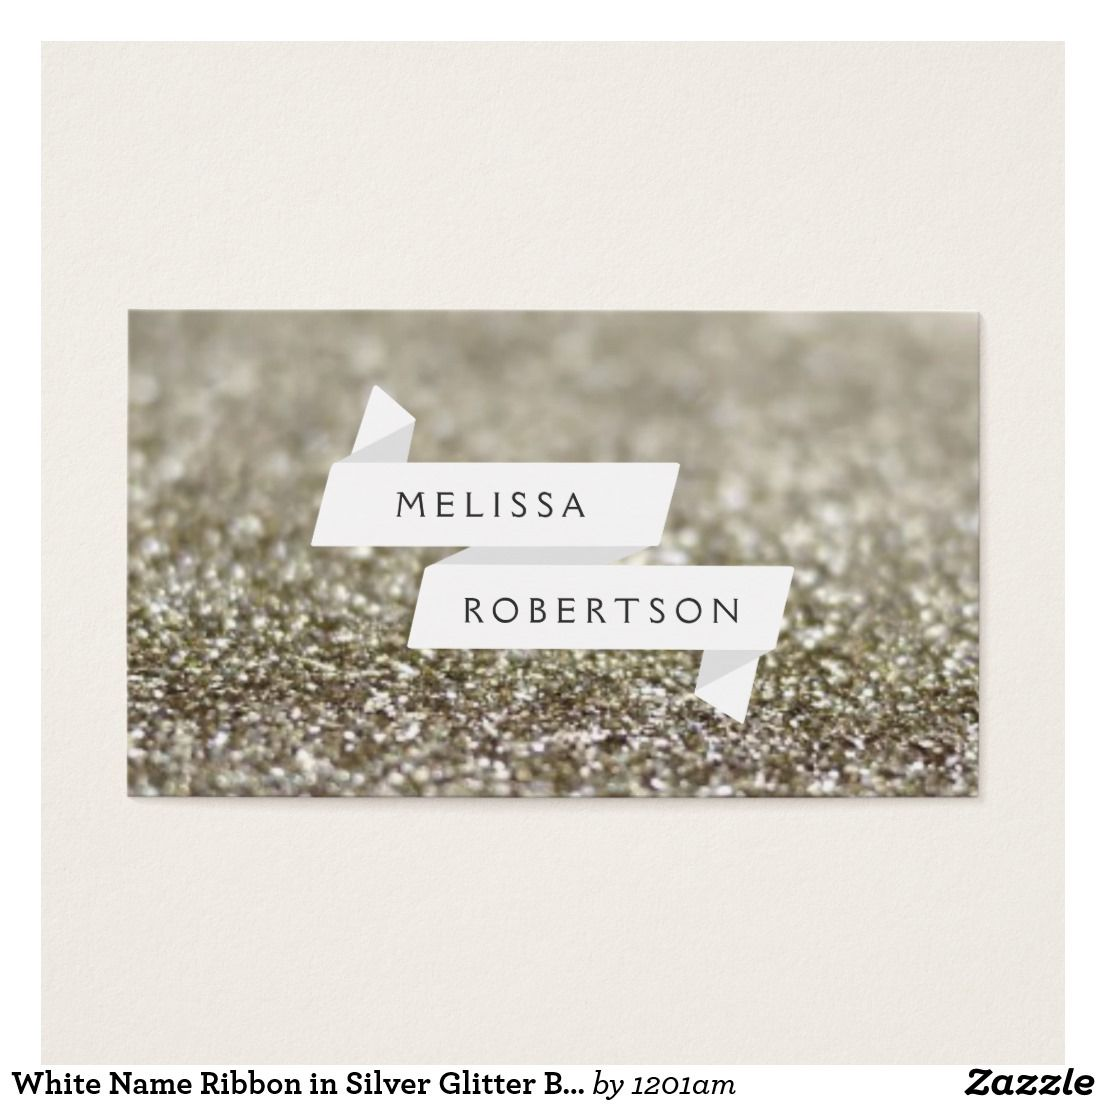 White Name Ribbon in Silver Glitter Business Card